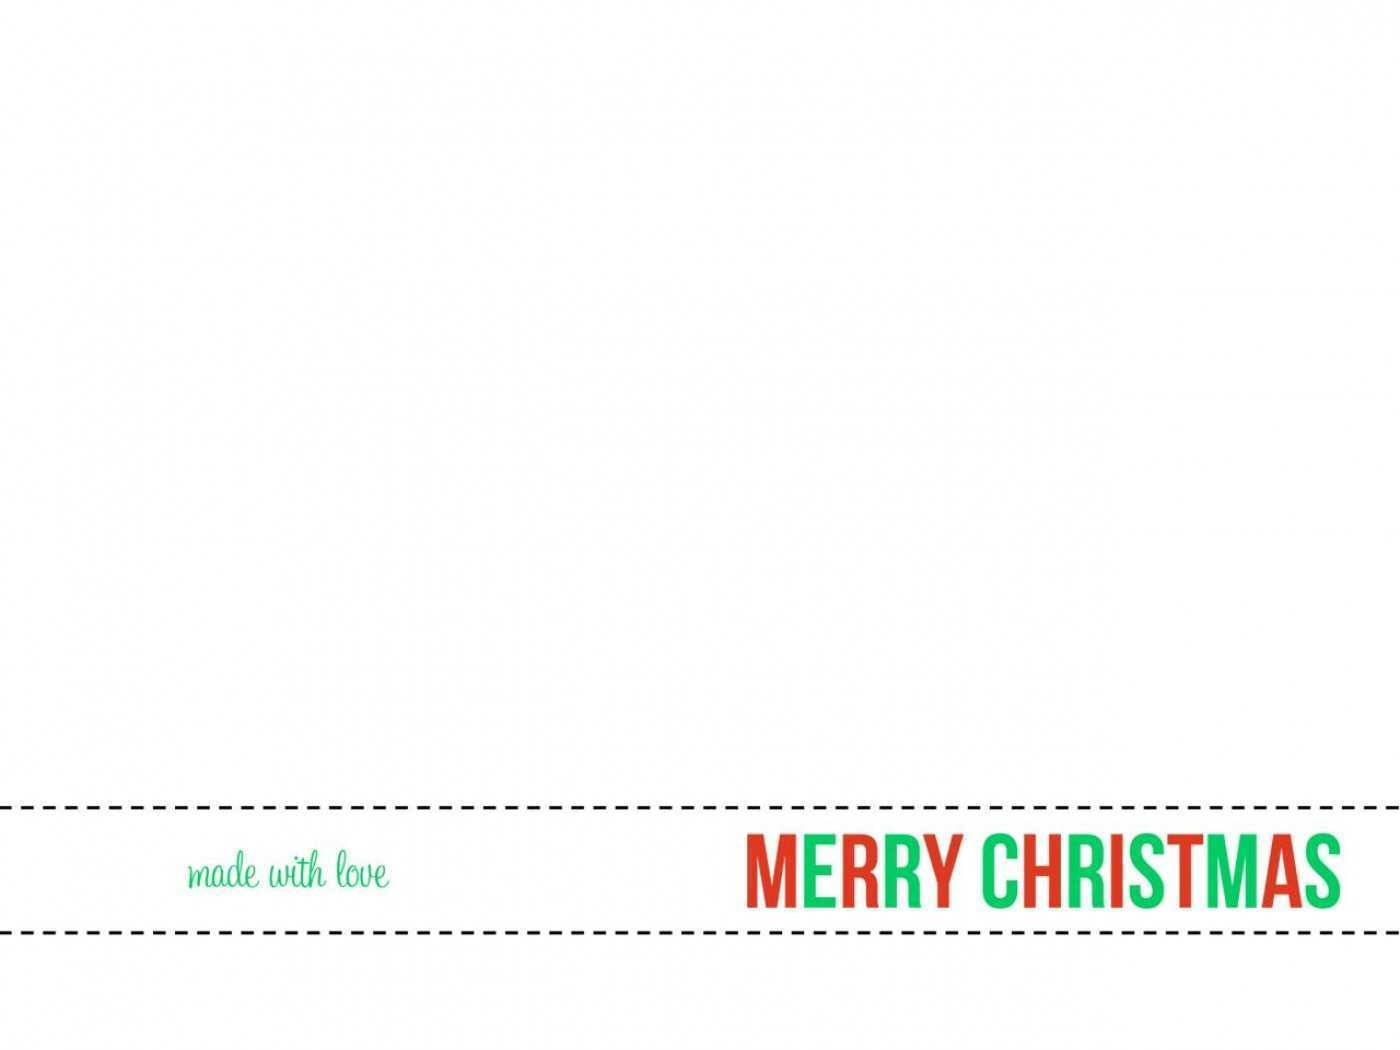 81 Printable Christmas Card Templates Open Office Photo for Christmas Card Templates Open Office